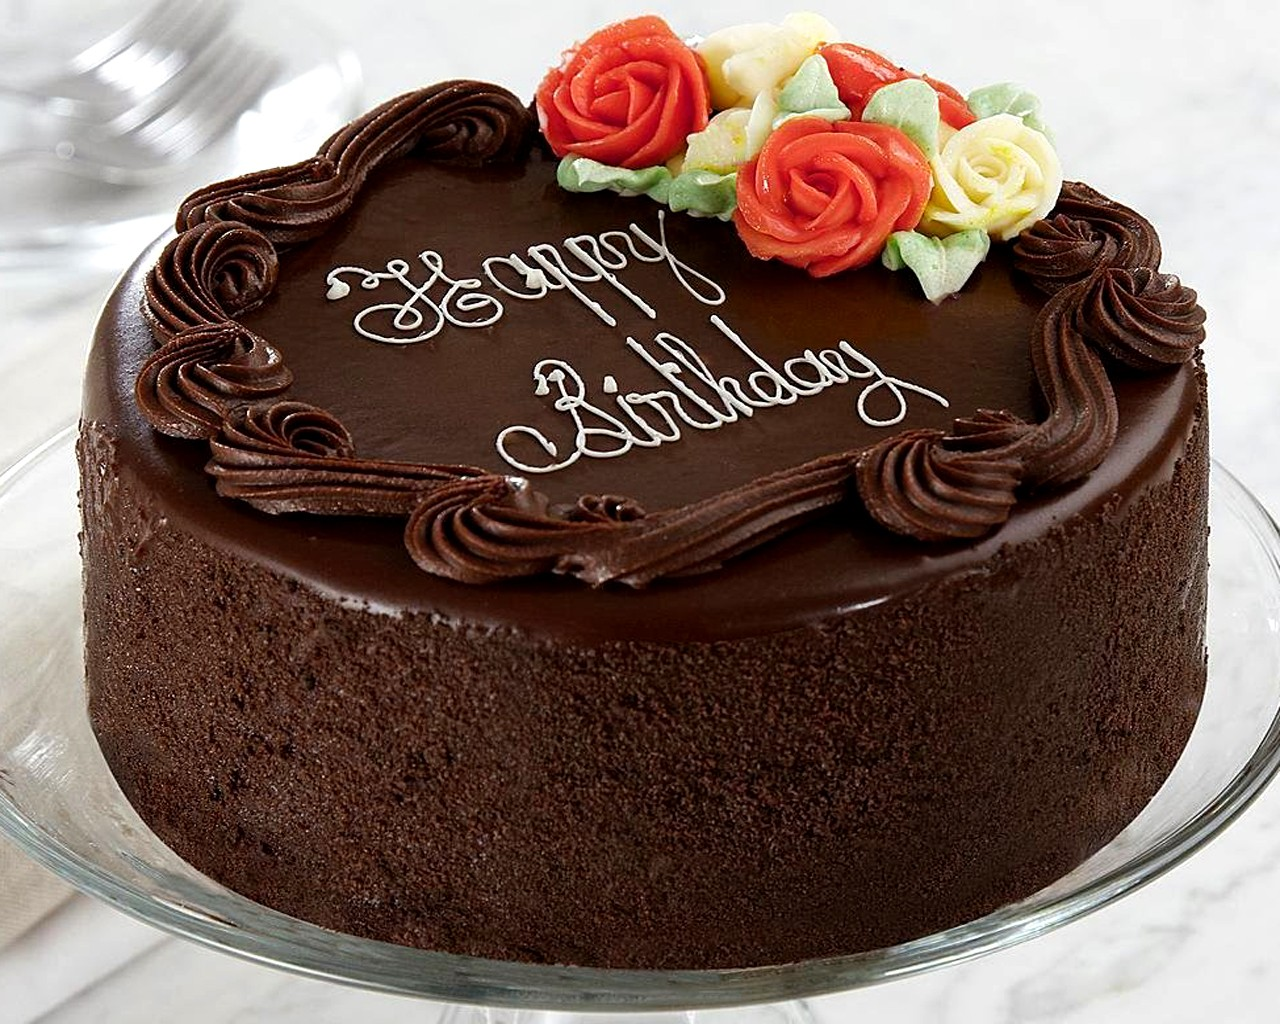 Birthday Cake Images Download Wallpapers 37 Wallpapers Adorable Wallpapers